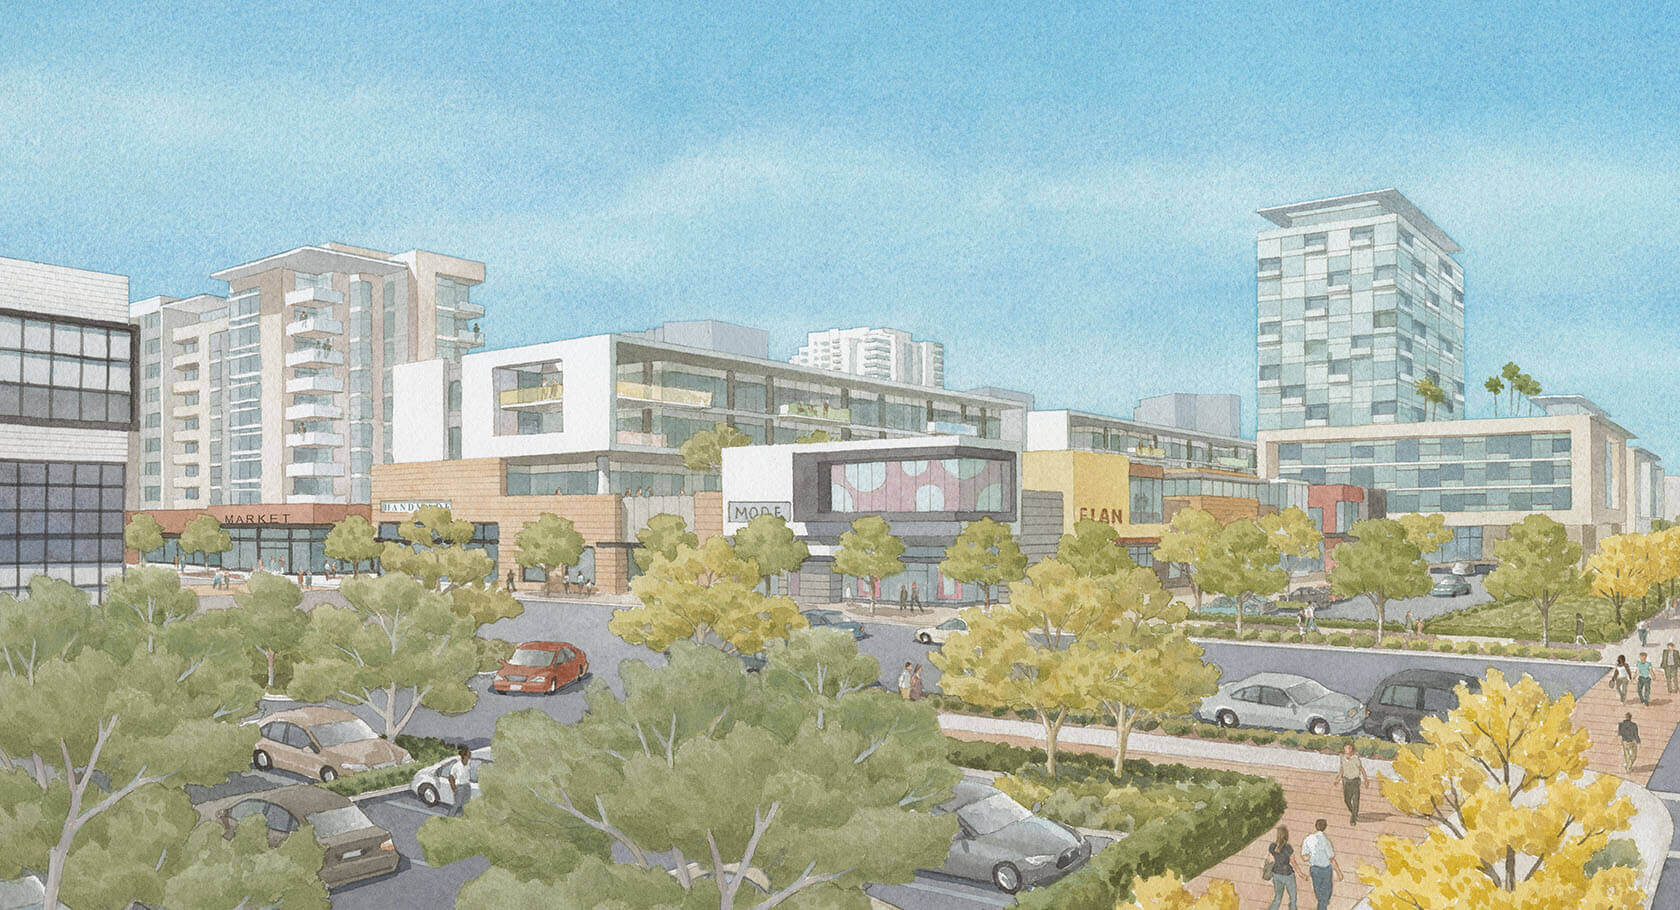 City approves major redevelopment of Warner Center's Westfield Promenade